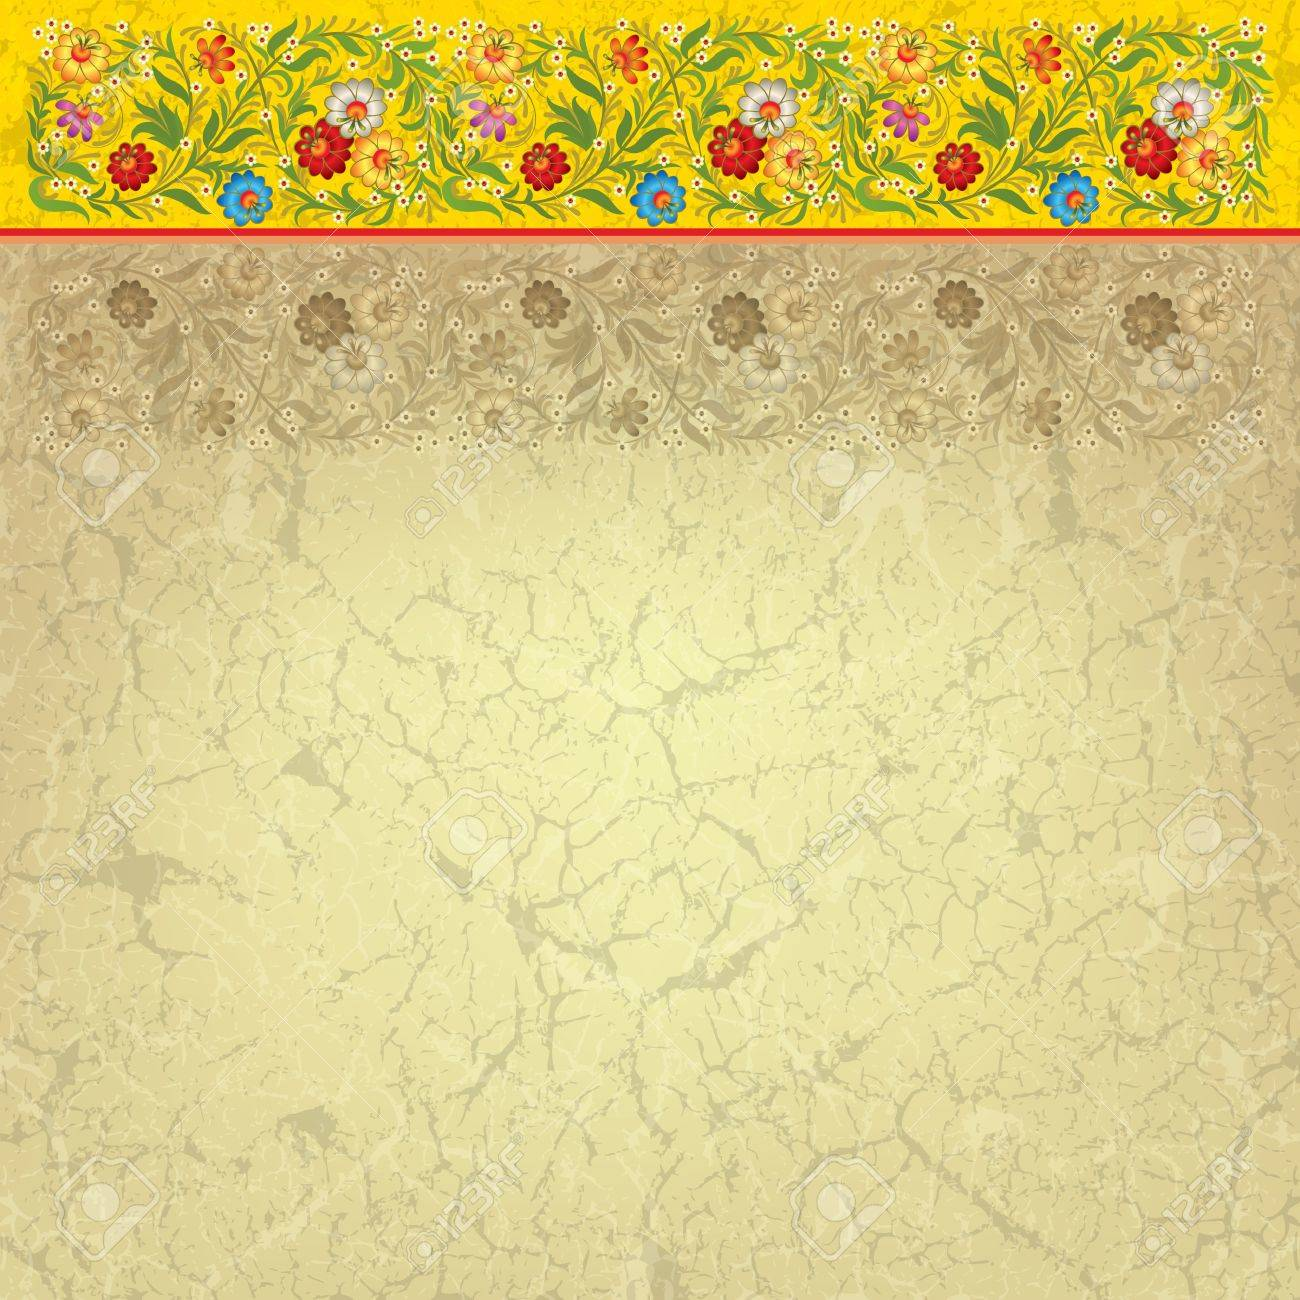 abctract grunge beige background with vintage floral ornament Stock Vector - 9935710